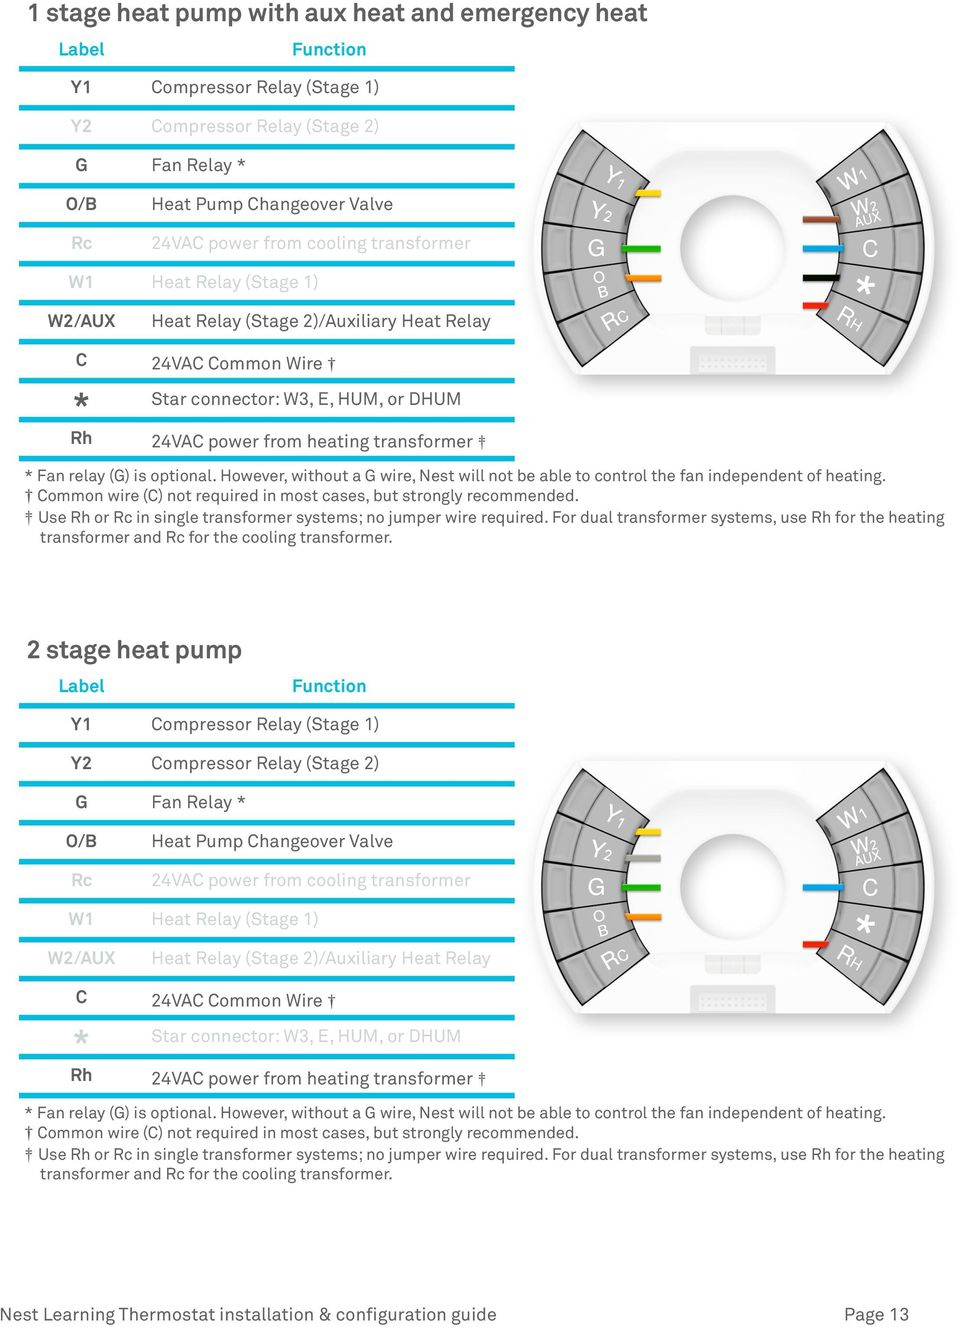 Nest Thermostat Wiring Diagram For Heat Pump | Wiring Diagram - Nest Thermostat 2 Wiring Diagram